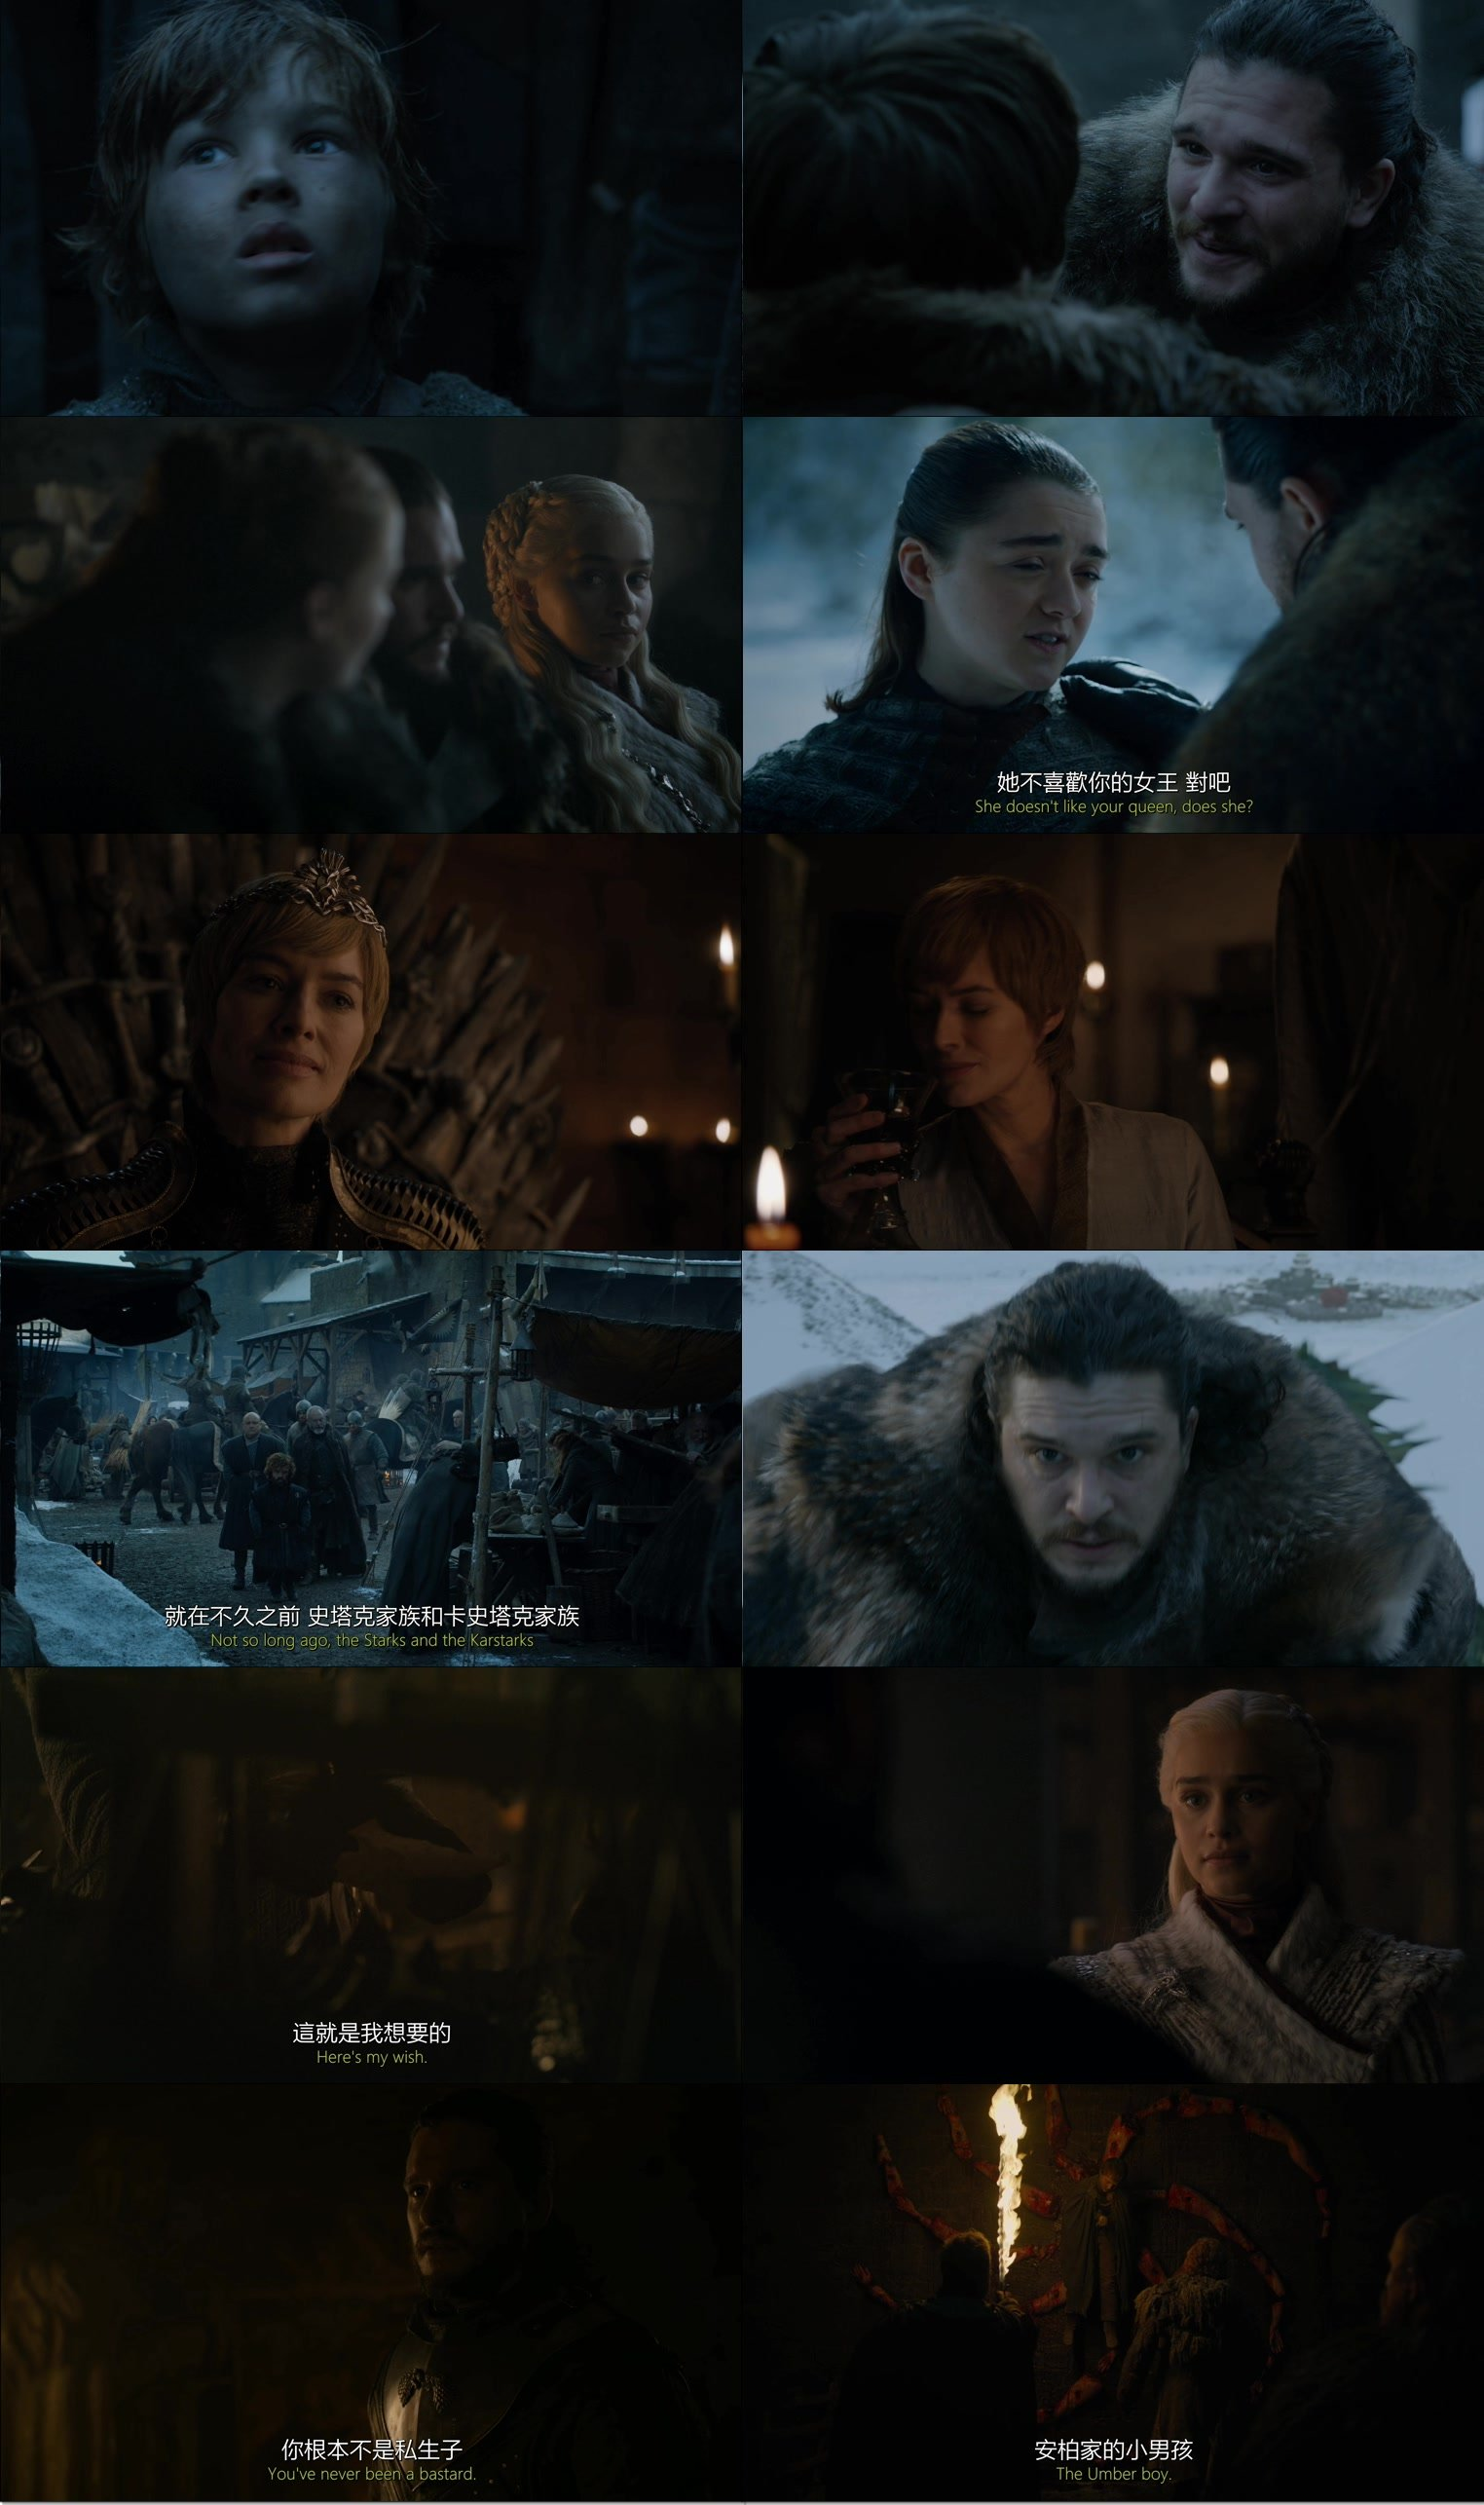 Game.of.Thrones.S08E01.Kings.Landing.1080p.AMZN.WEB-DL.DDP5.1.H.264-GoT.mkv